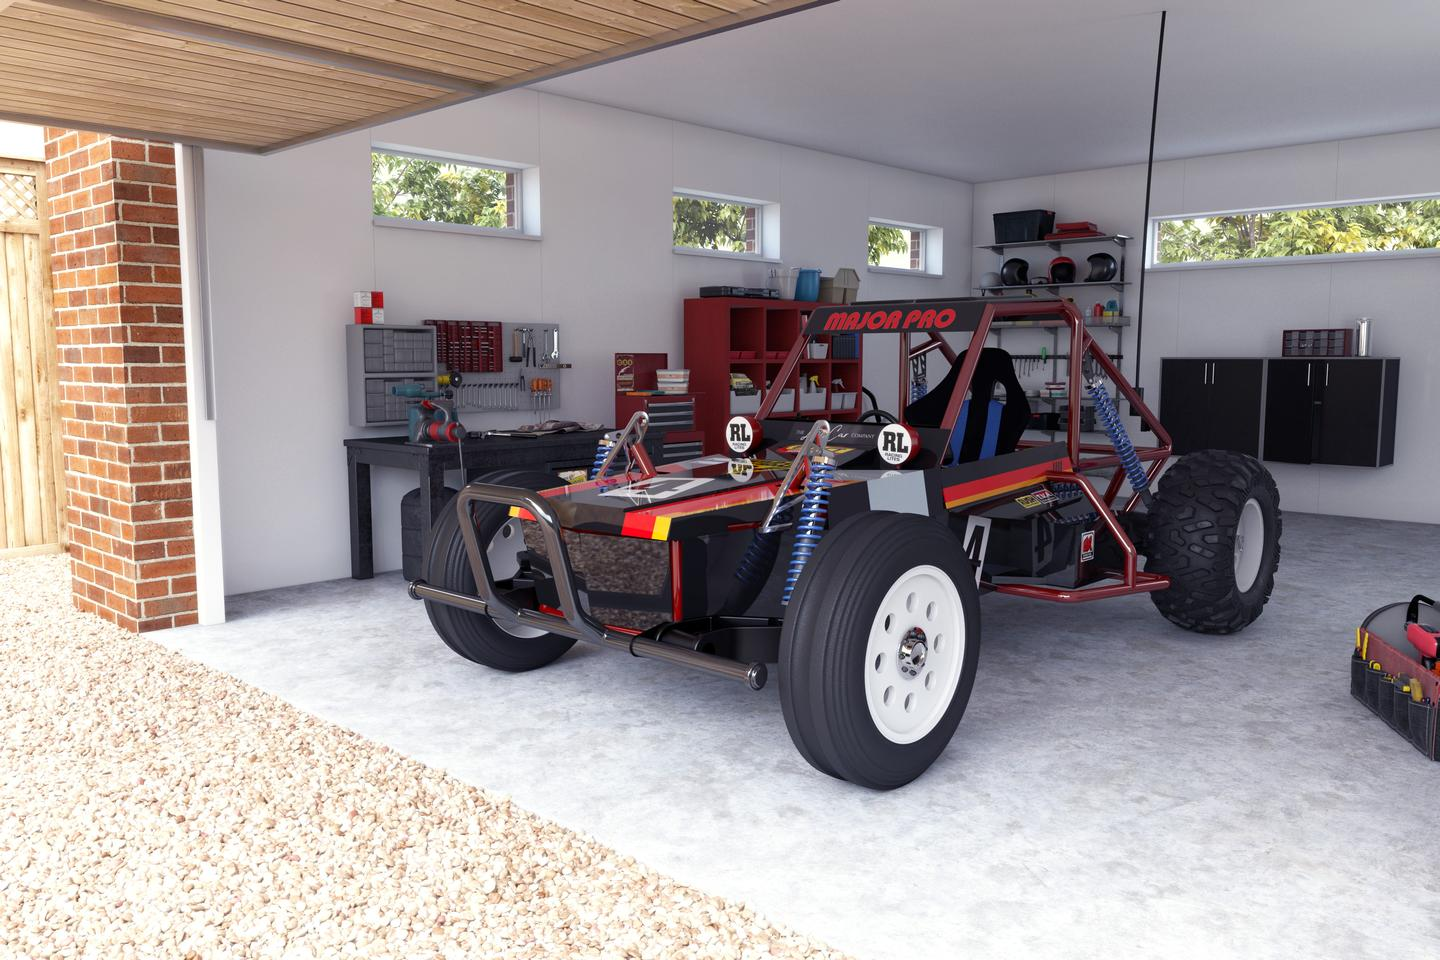 The 8/10th scale Wild One Max electric buggy will be available in 2022